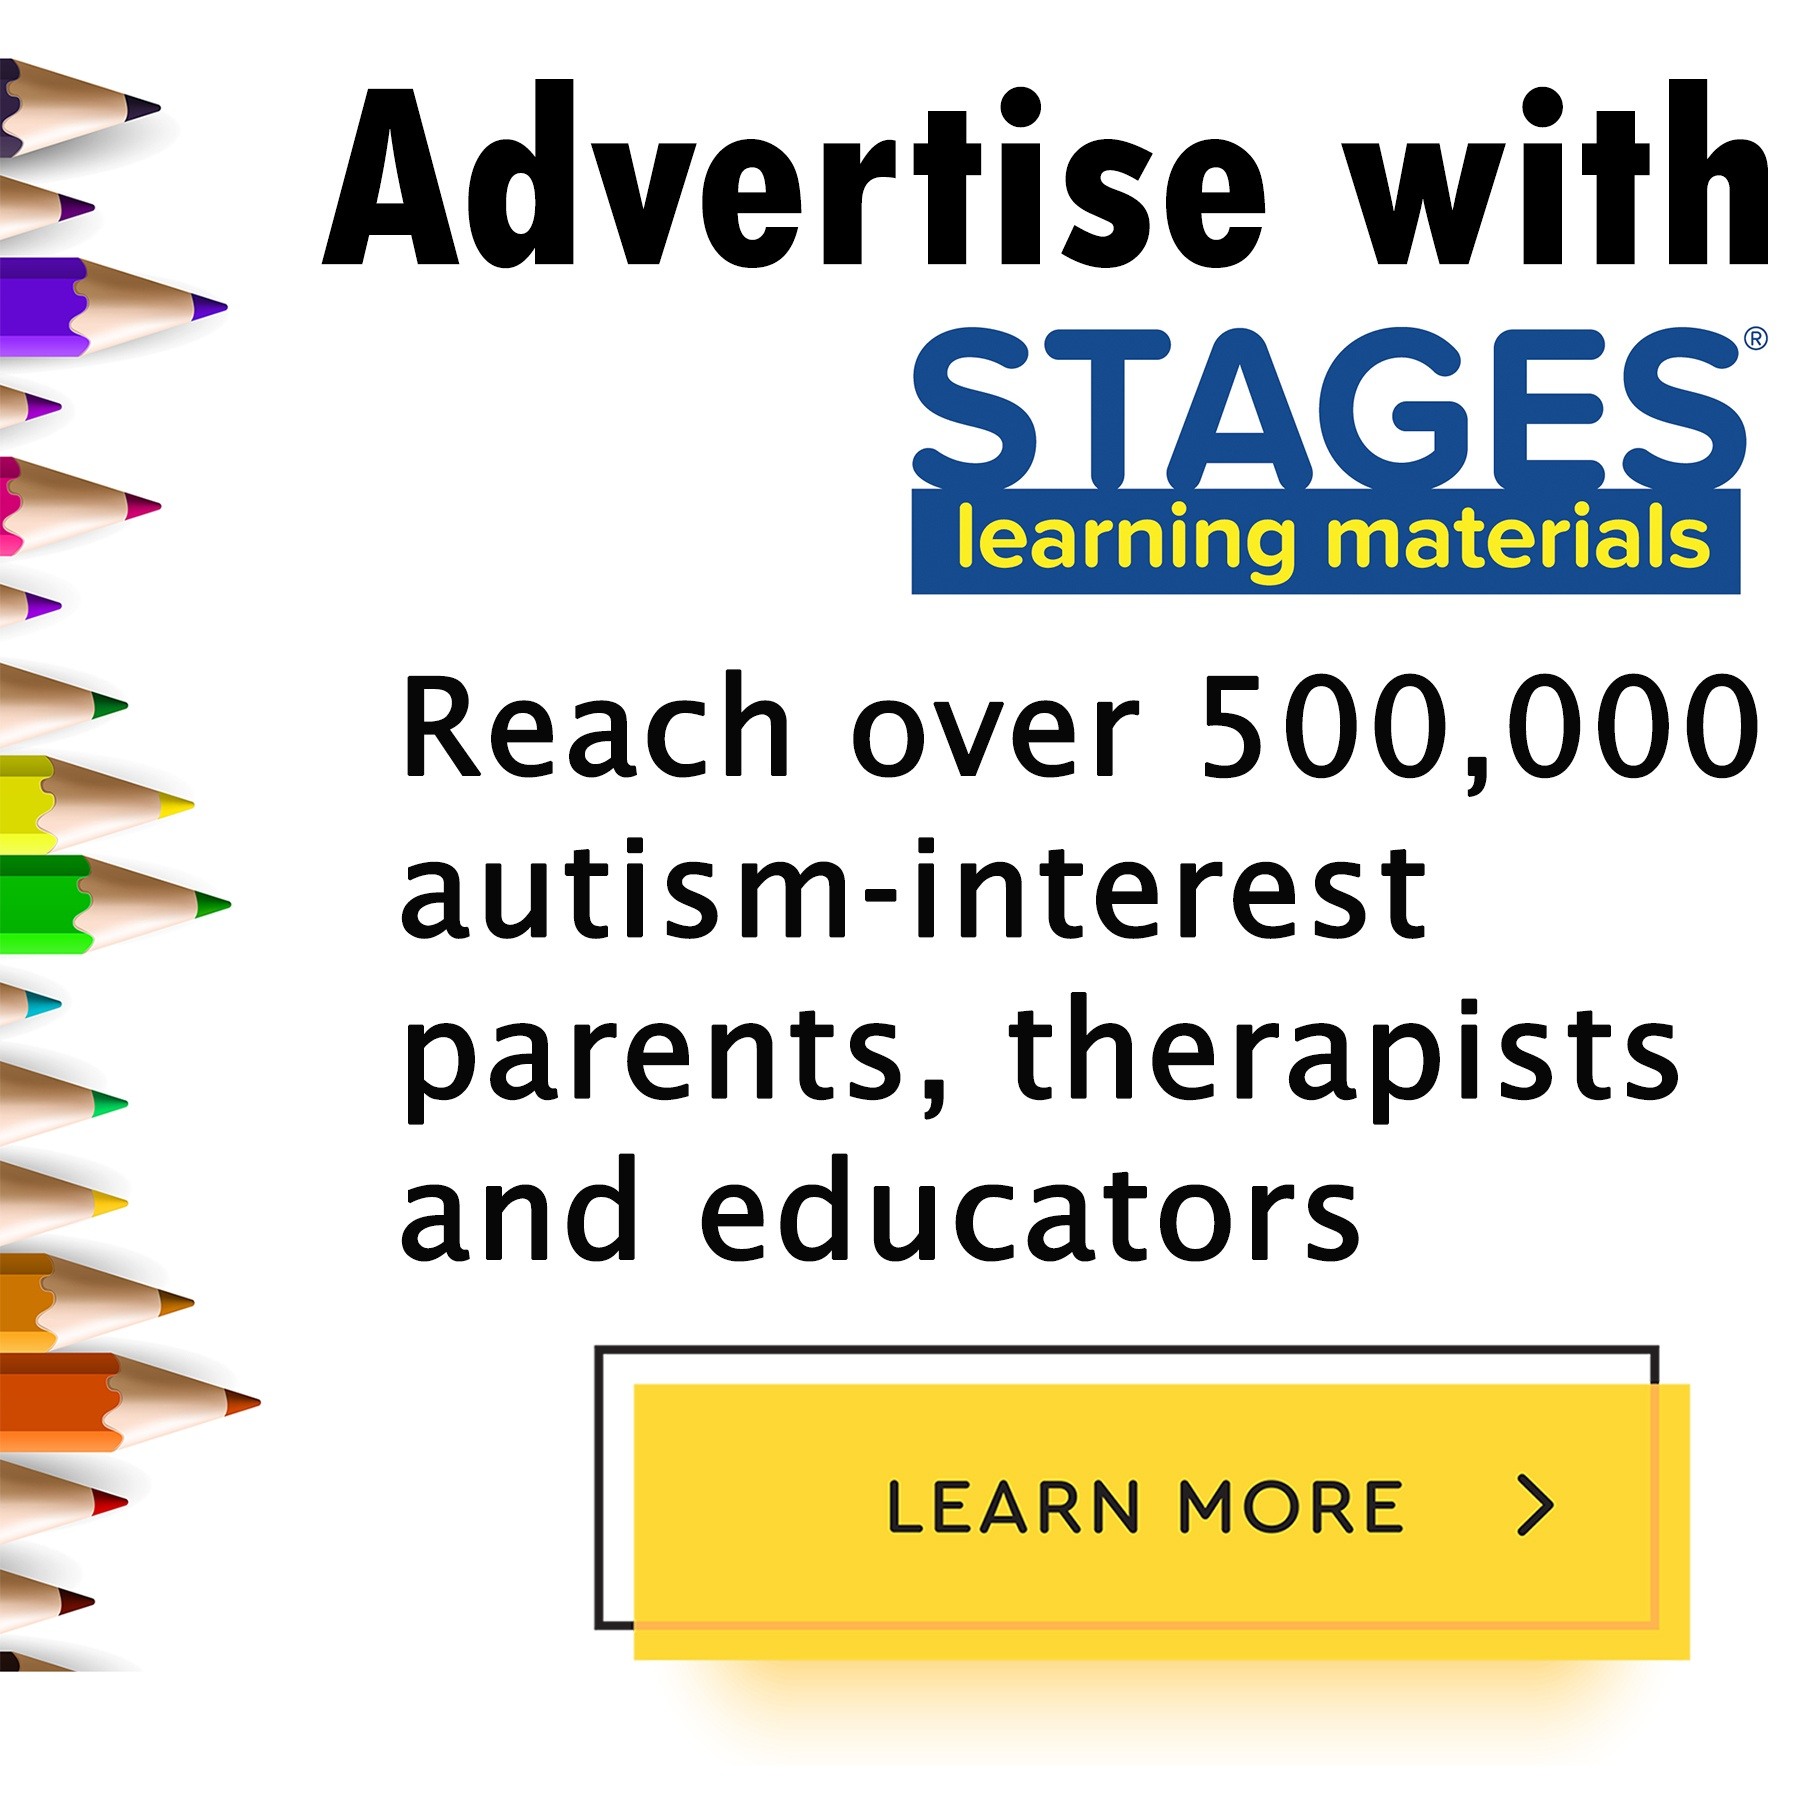 Ad with Stages4.jpg